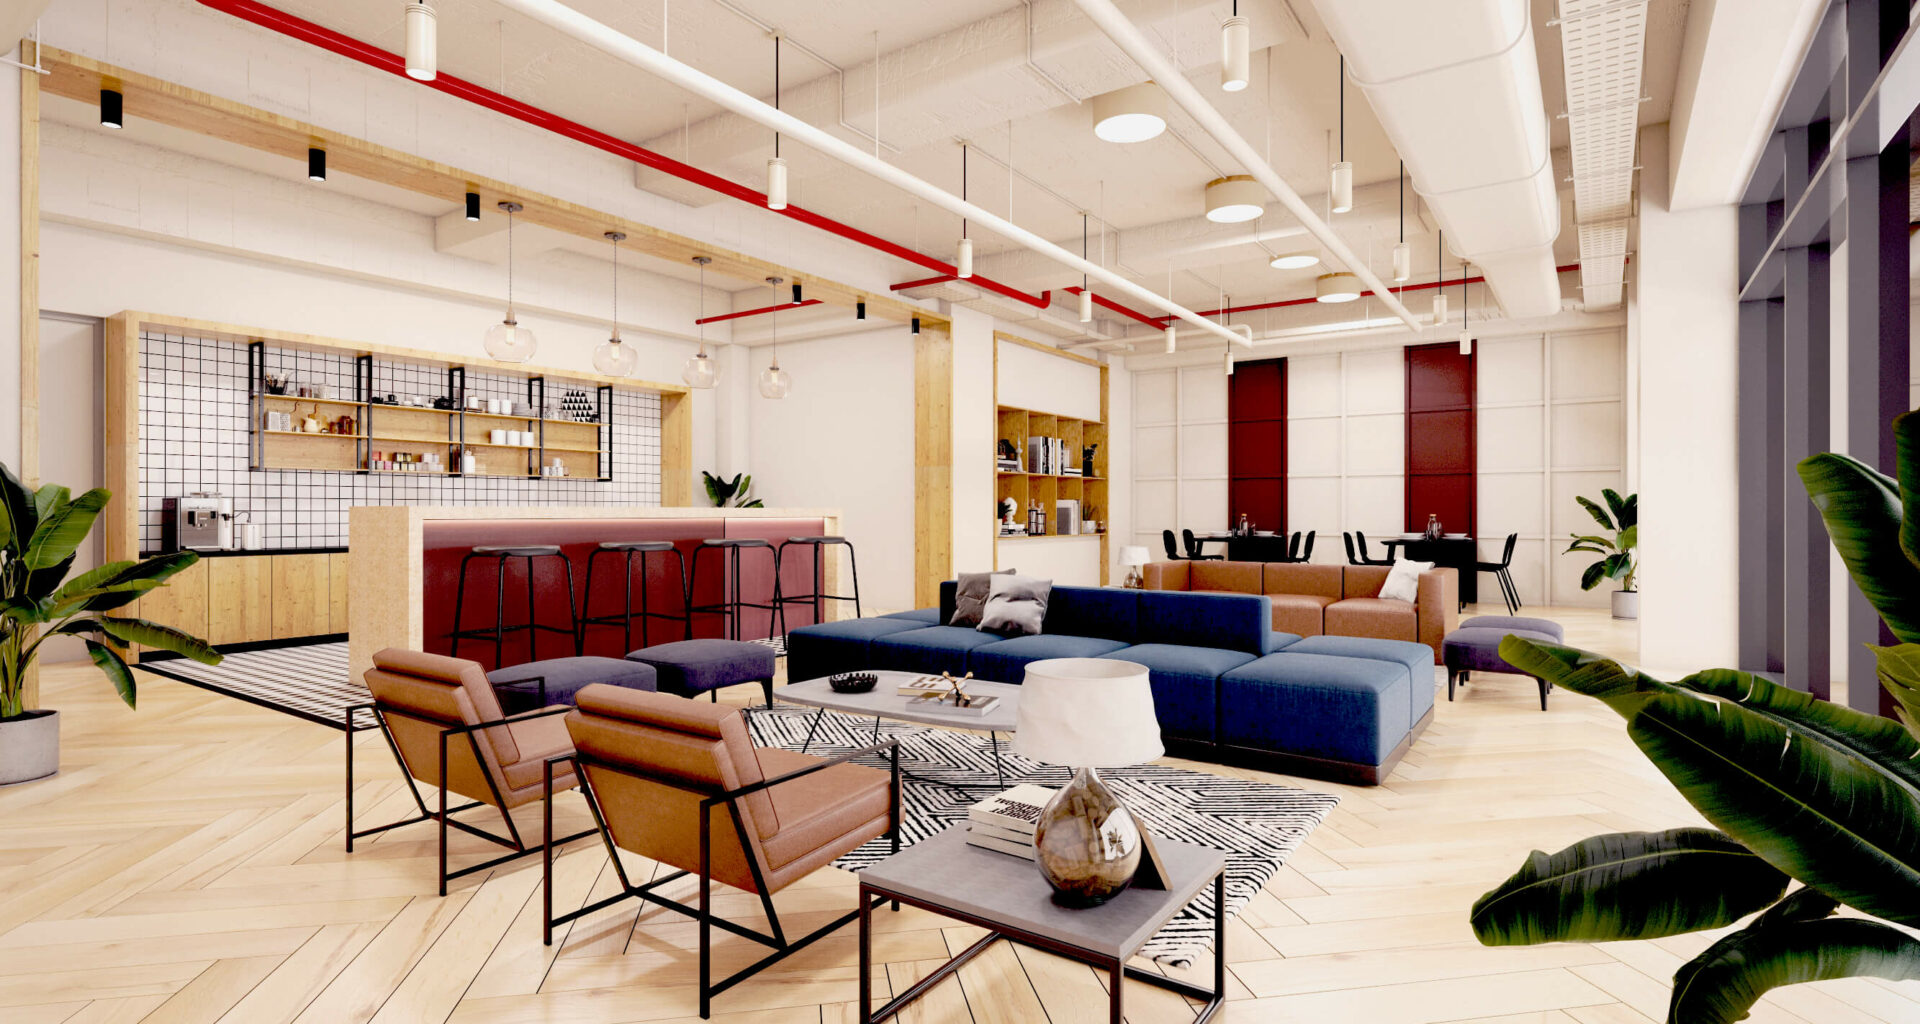 7 Best Coworking Spaces in Hitech City Hyderabad for Enterprises and Startups